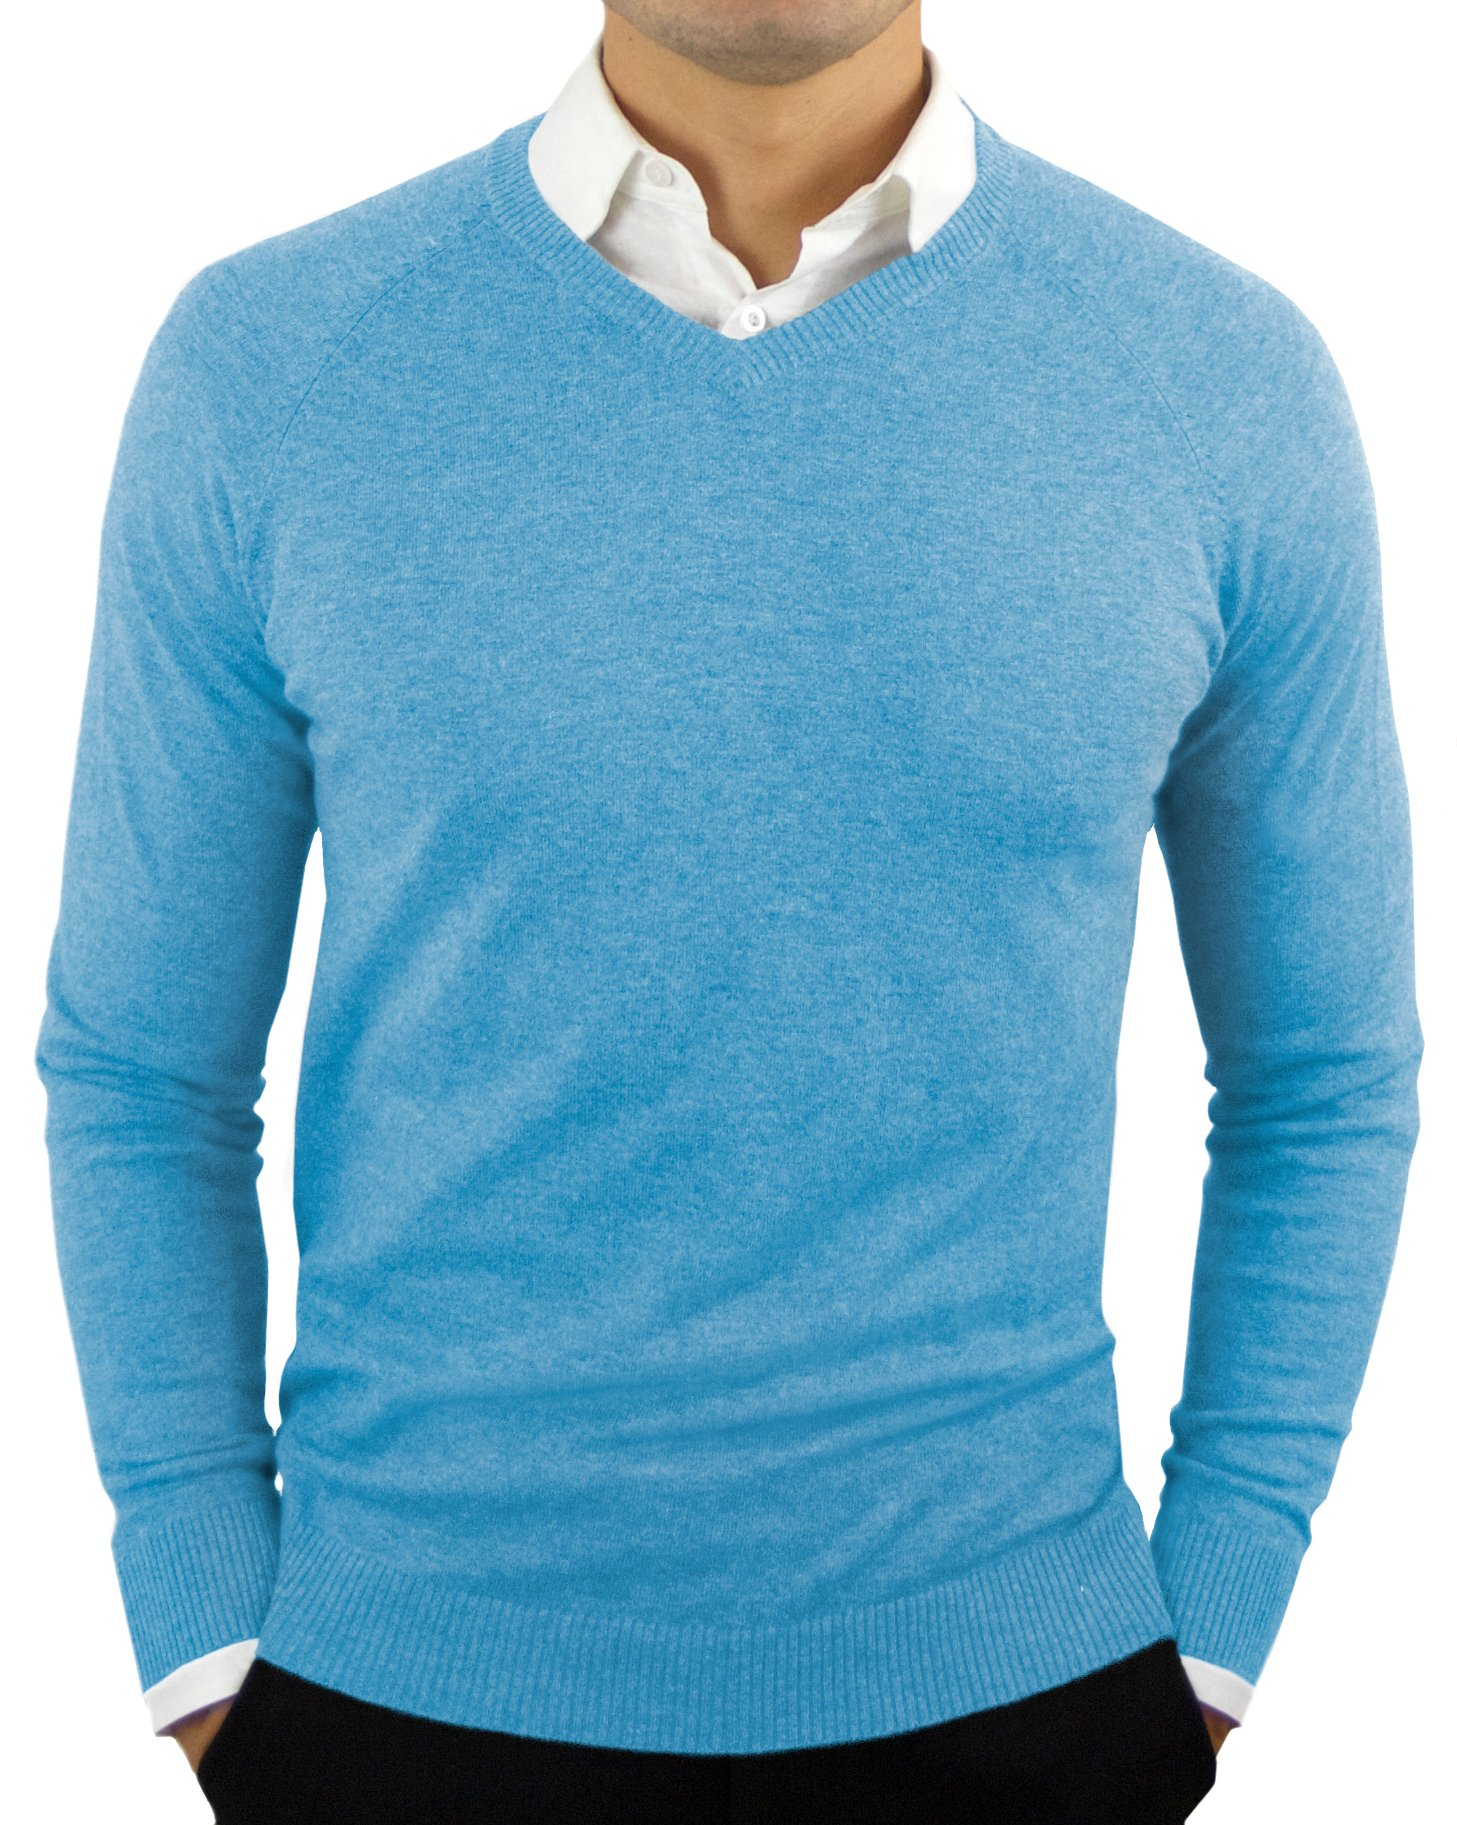 Comfortably Collared Men's Perfect Slim Fit V-Neck Sweater Medium Ethereal Blue